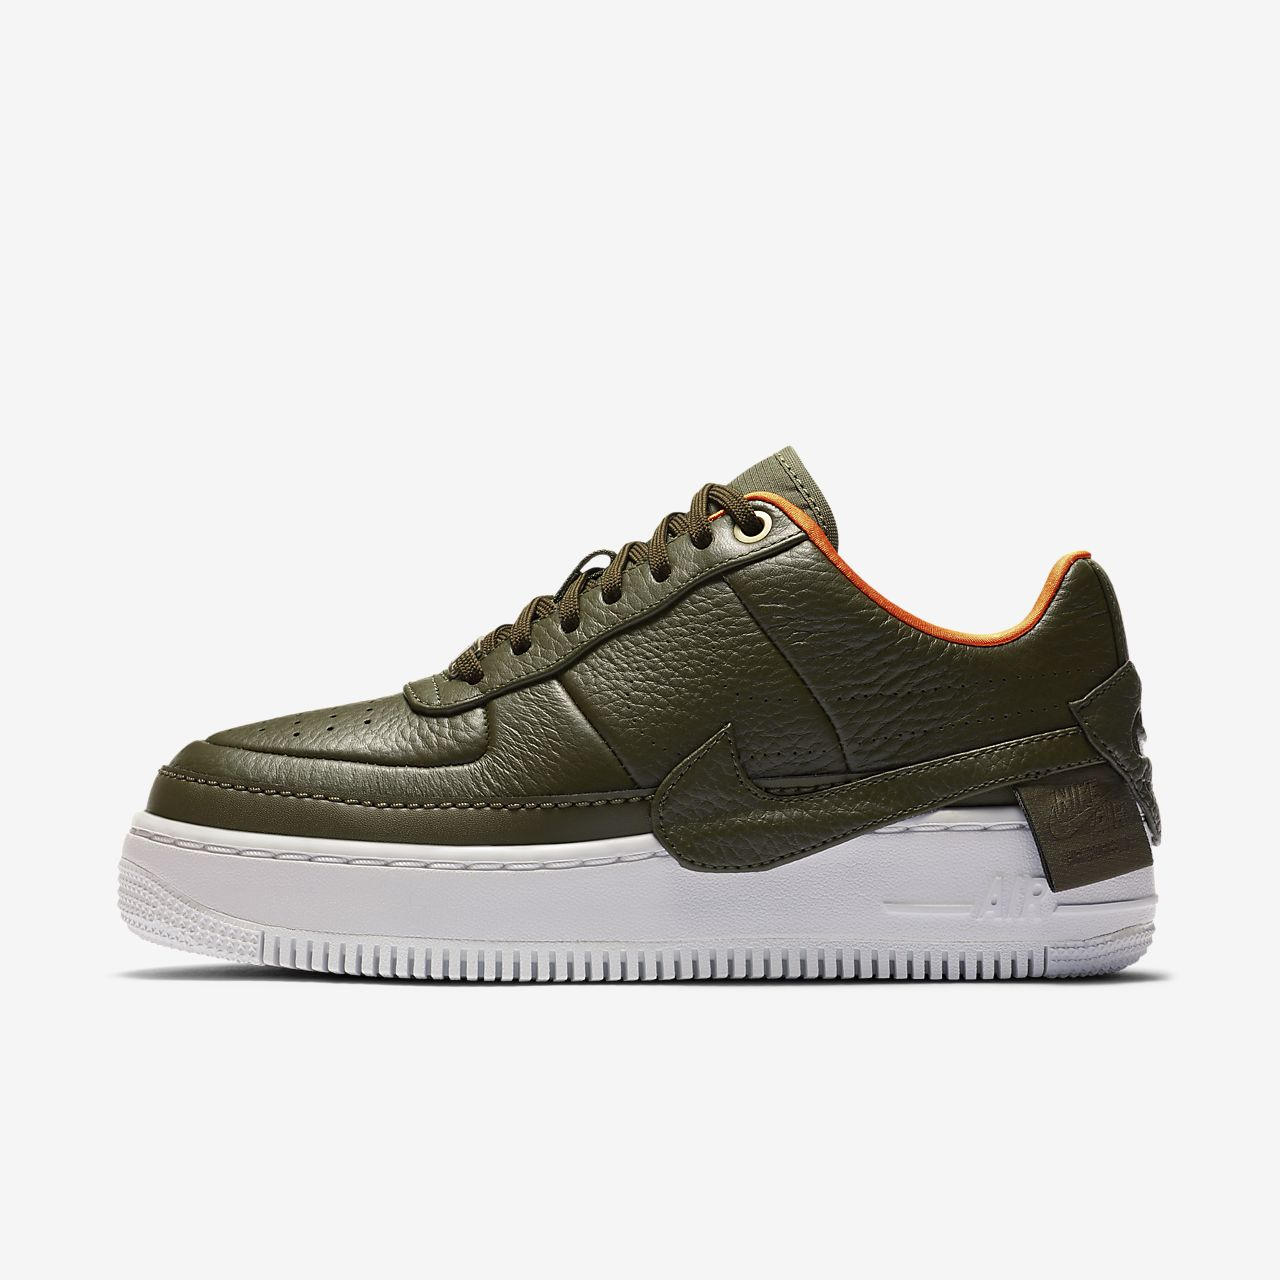 san francisco 4d34b 1c6c5 ... Nike Air Force 1 Jester XX Premium Zapatillas - Mujer